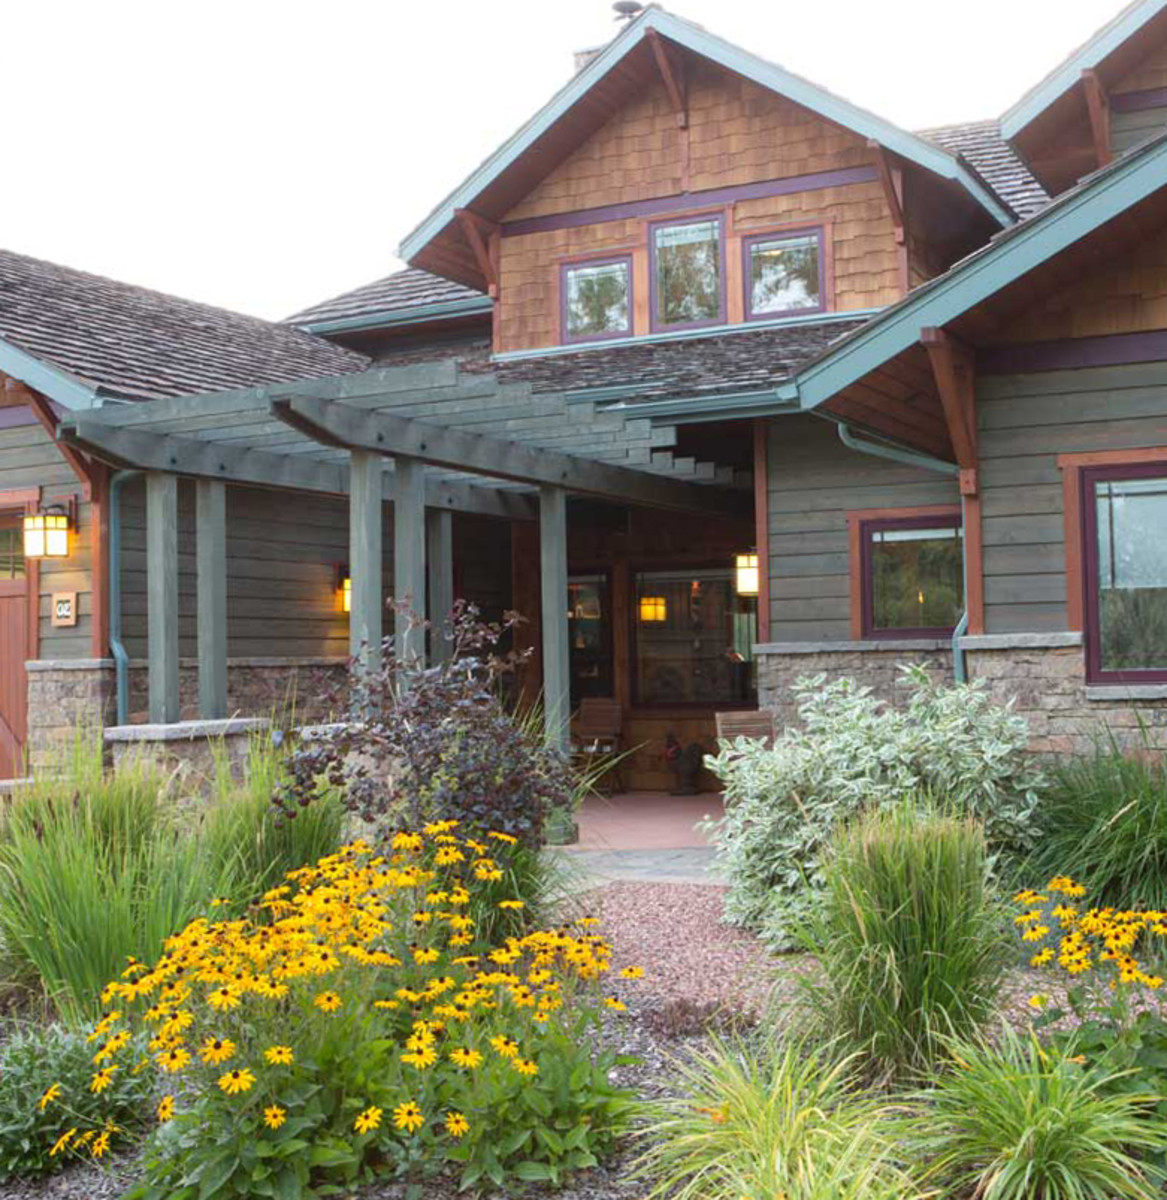 A transplant from Pasadena builds a Craftsman home in Great Falls, Montana, to local acclaim.